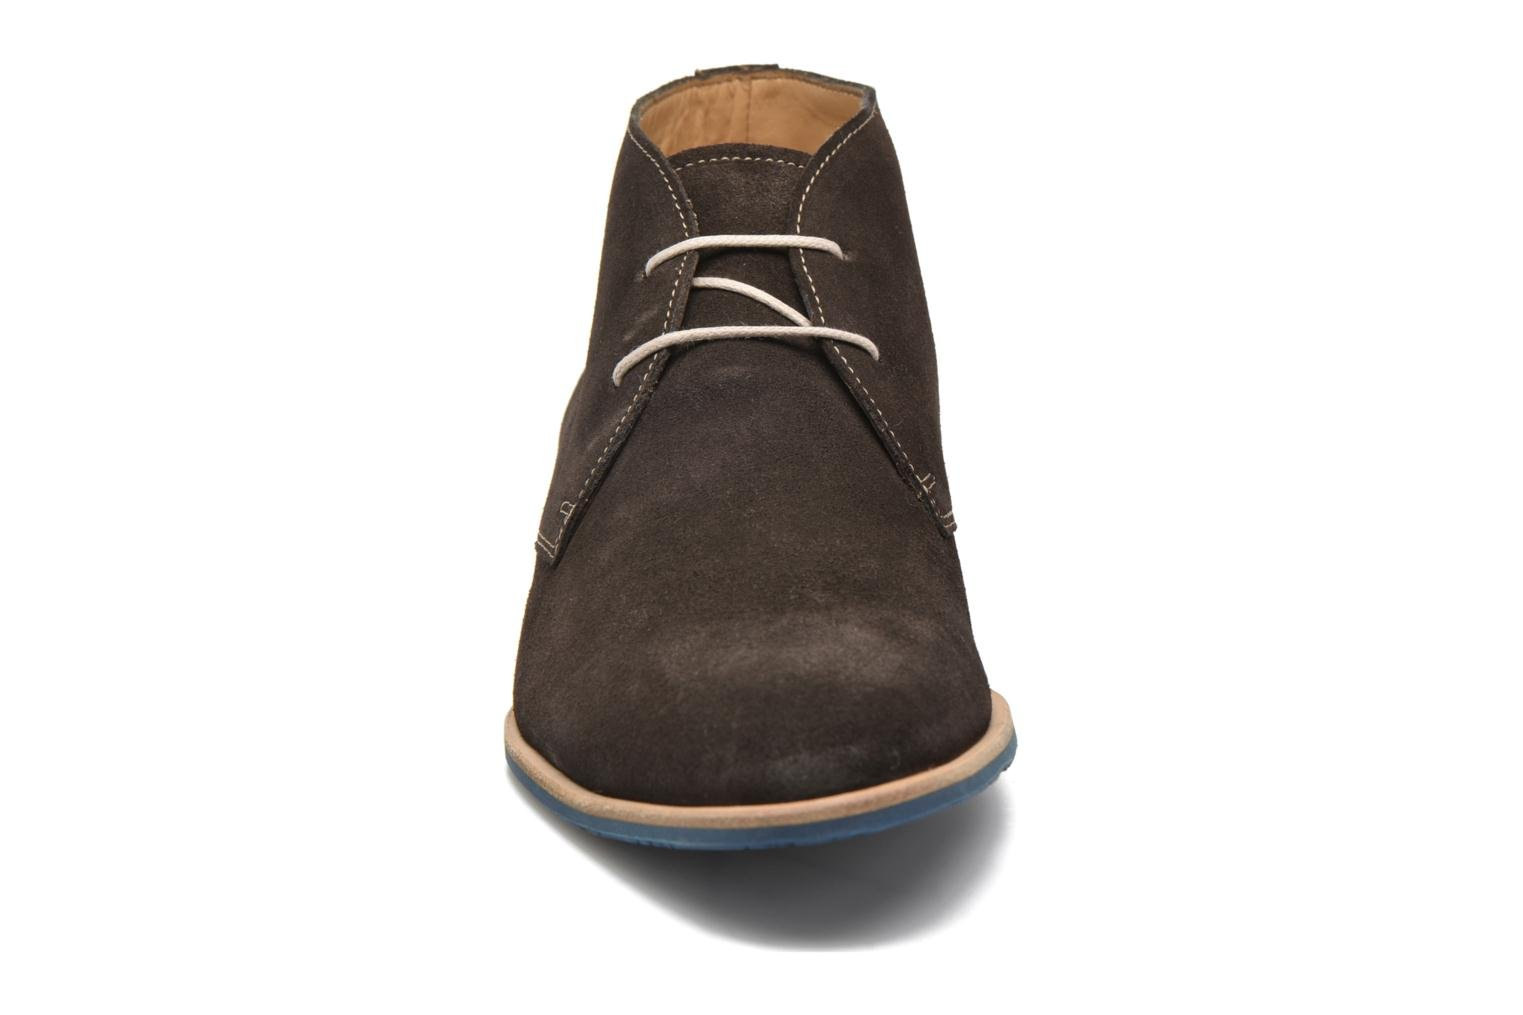 Andy Suede choco 9196+9626